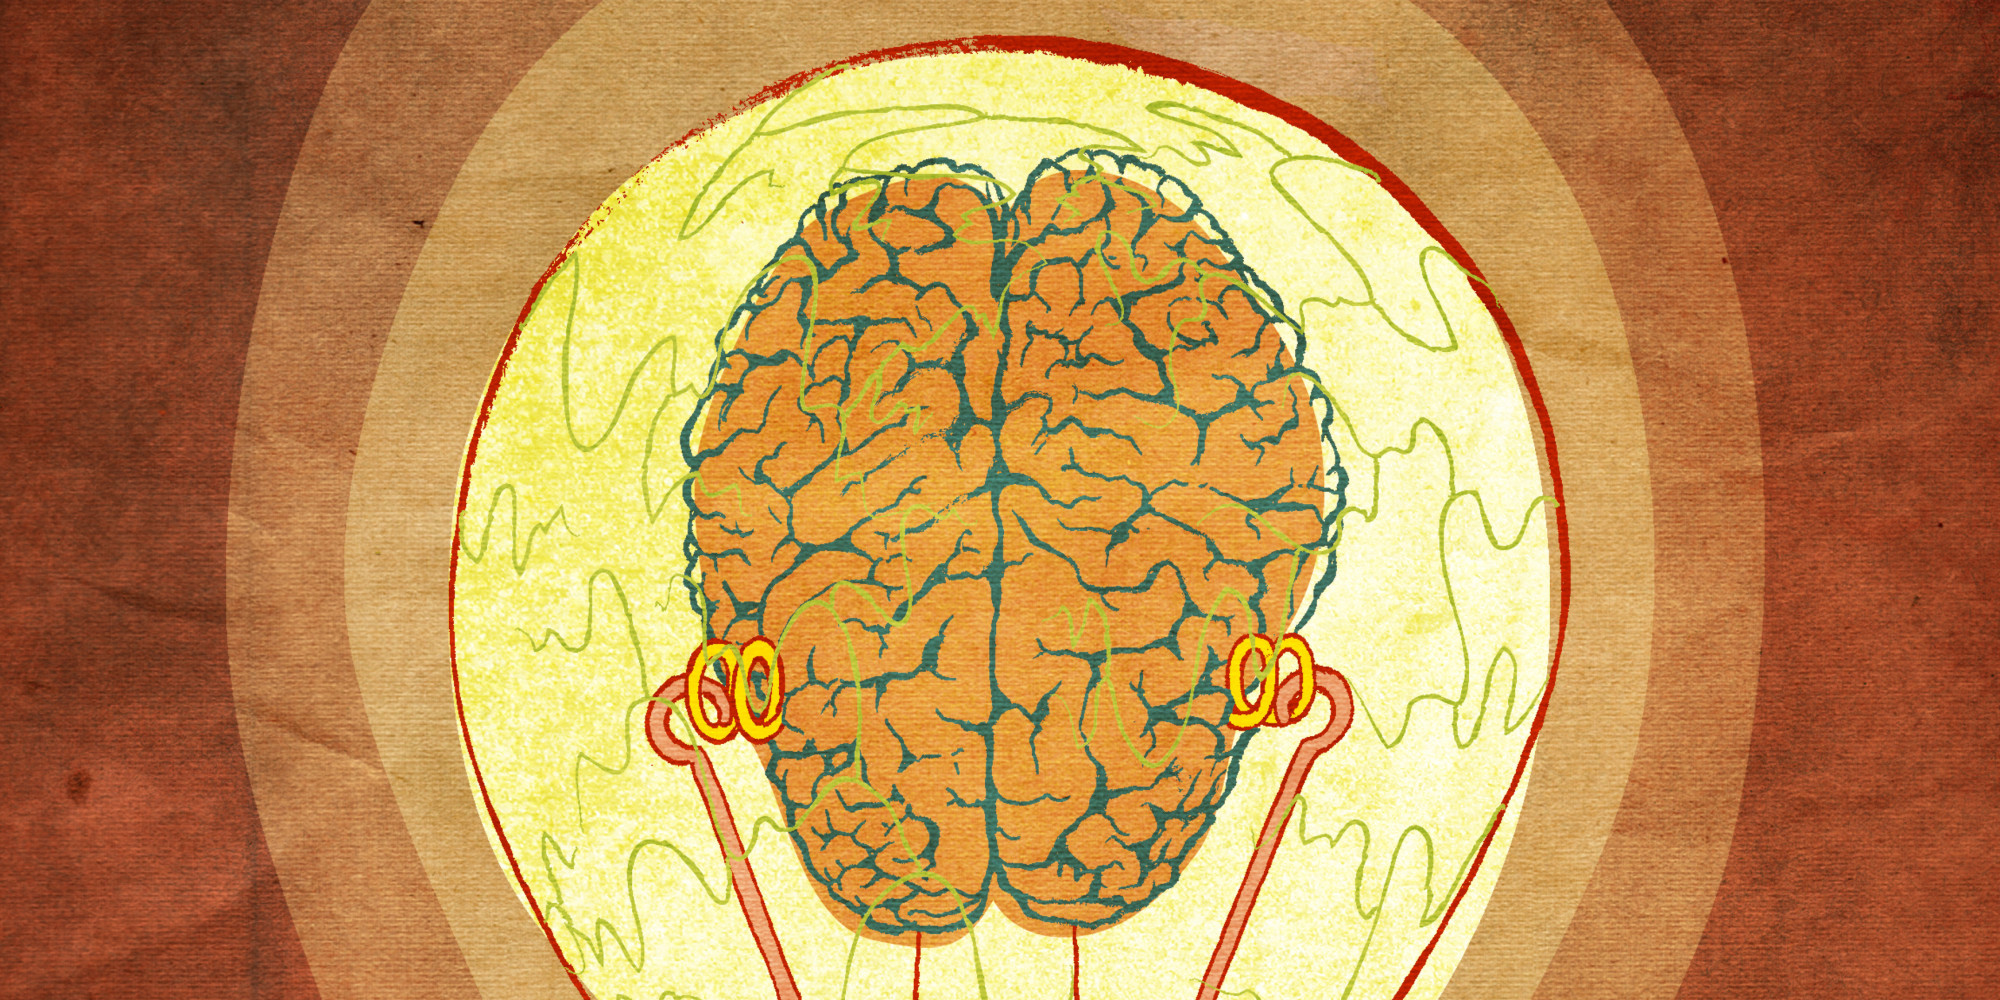 The brain has been a mythologized artifact of humanity for as long as we can remember. You've seen its raw potential